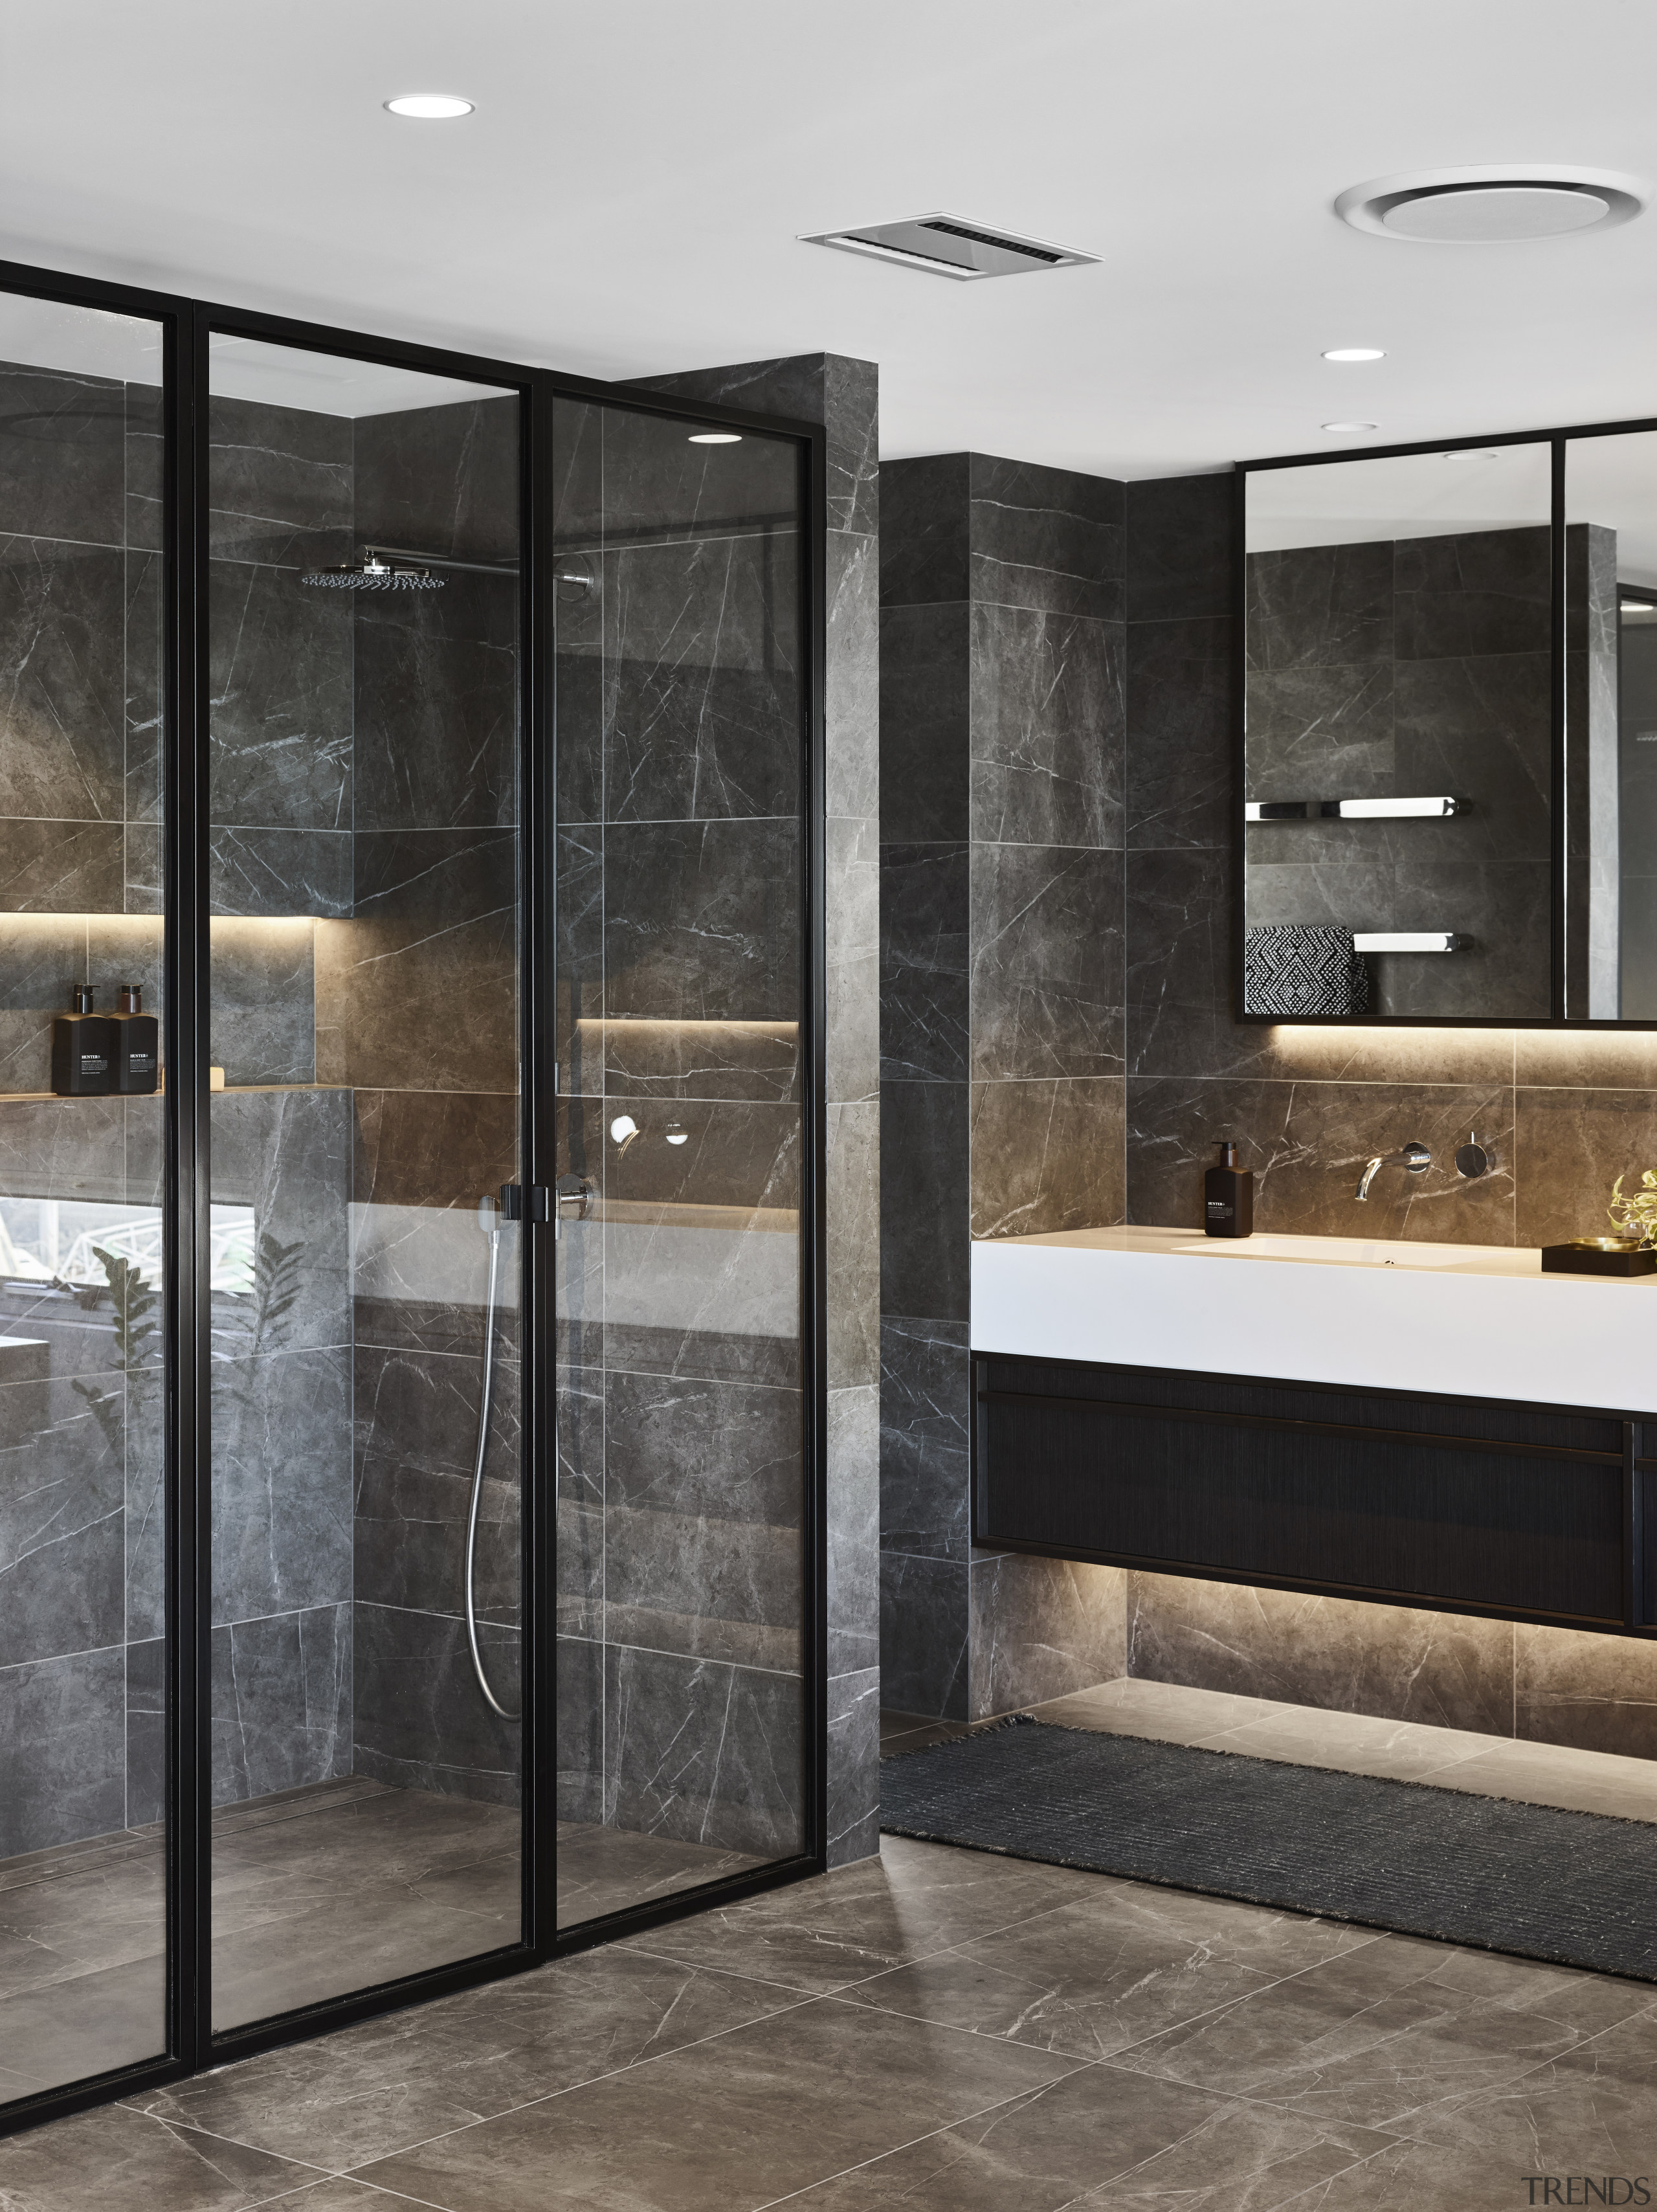 This shower nook is continued in the same architecture, automotive exterior, bathroom, building, ceiling, door, floor, flooring, furniture, glass, house, interior design, material property, property, room, shower, tile, gray, black